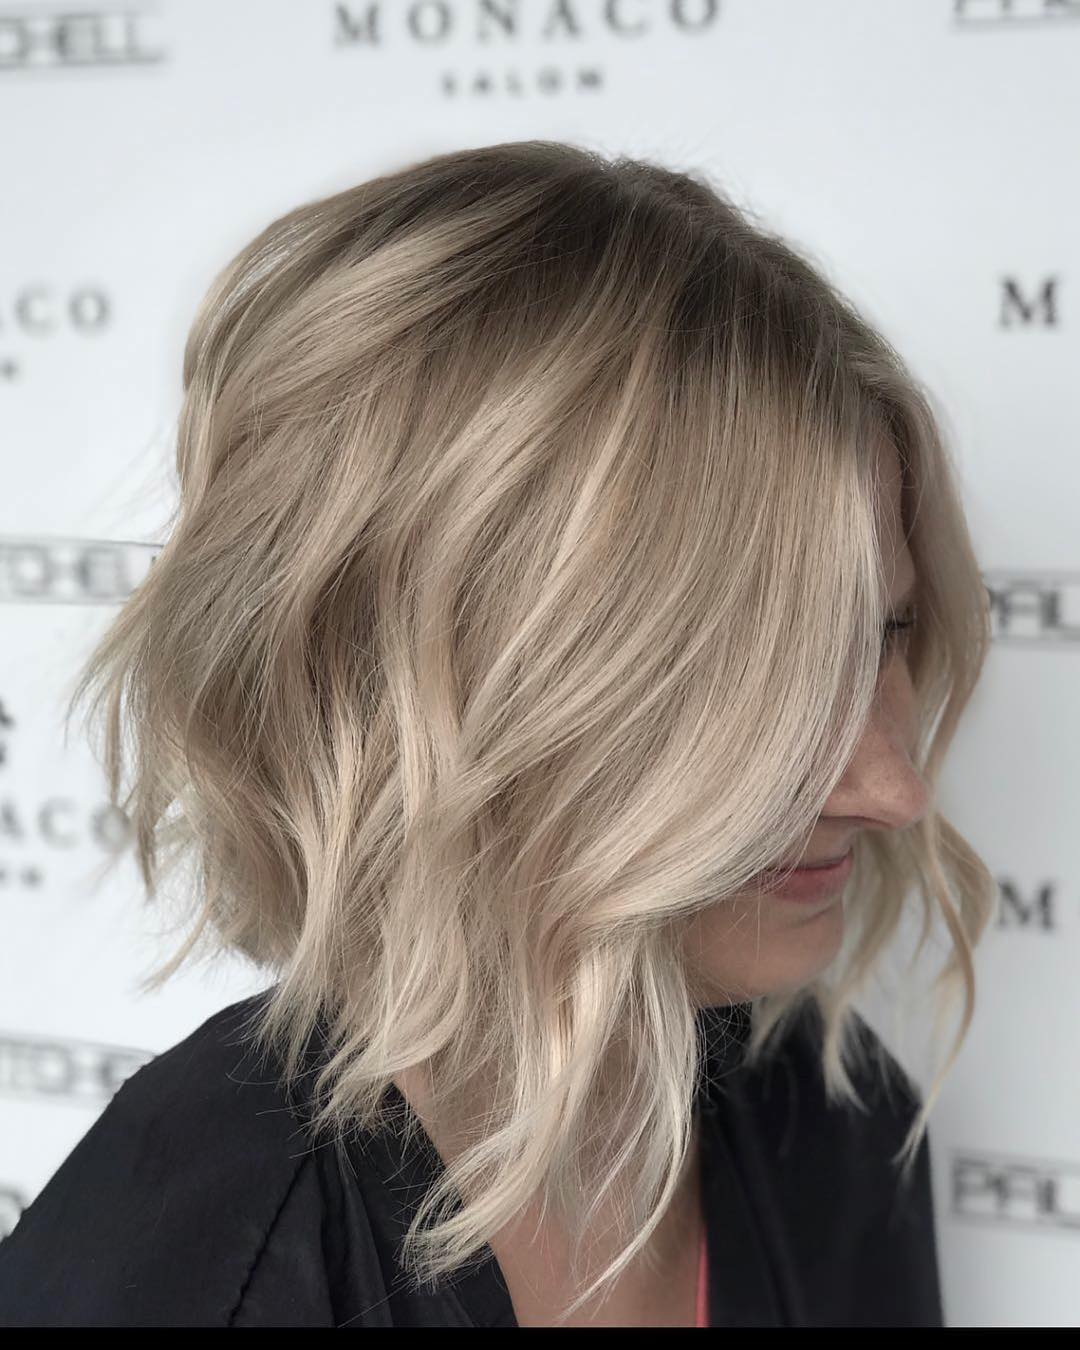 Shaggy Hairstyles For Thin Hair HairStyles